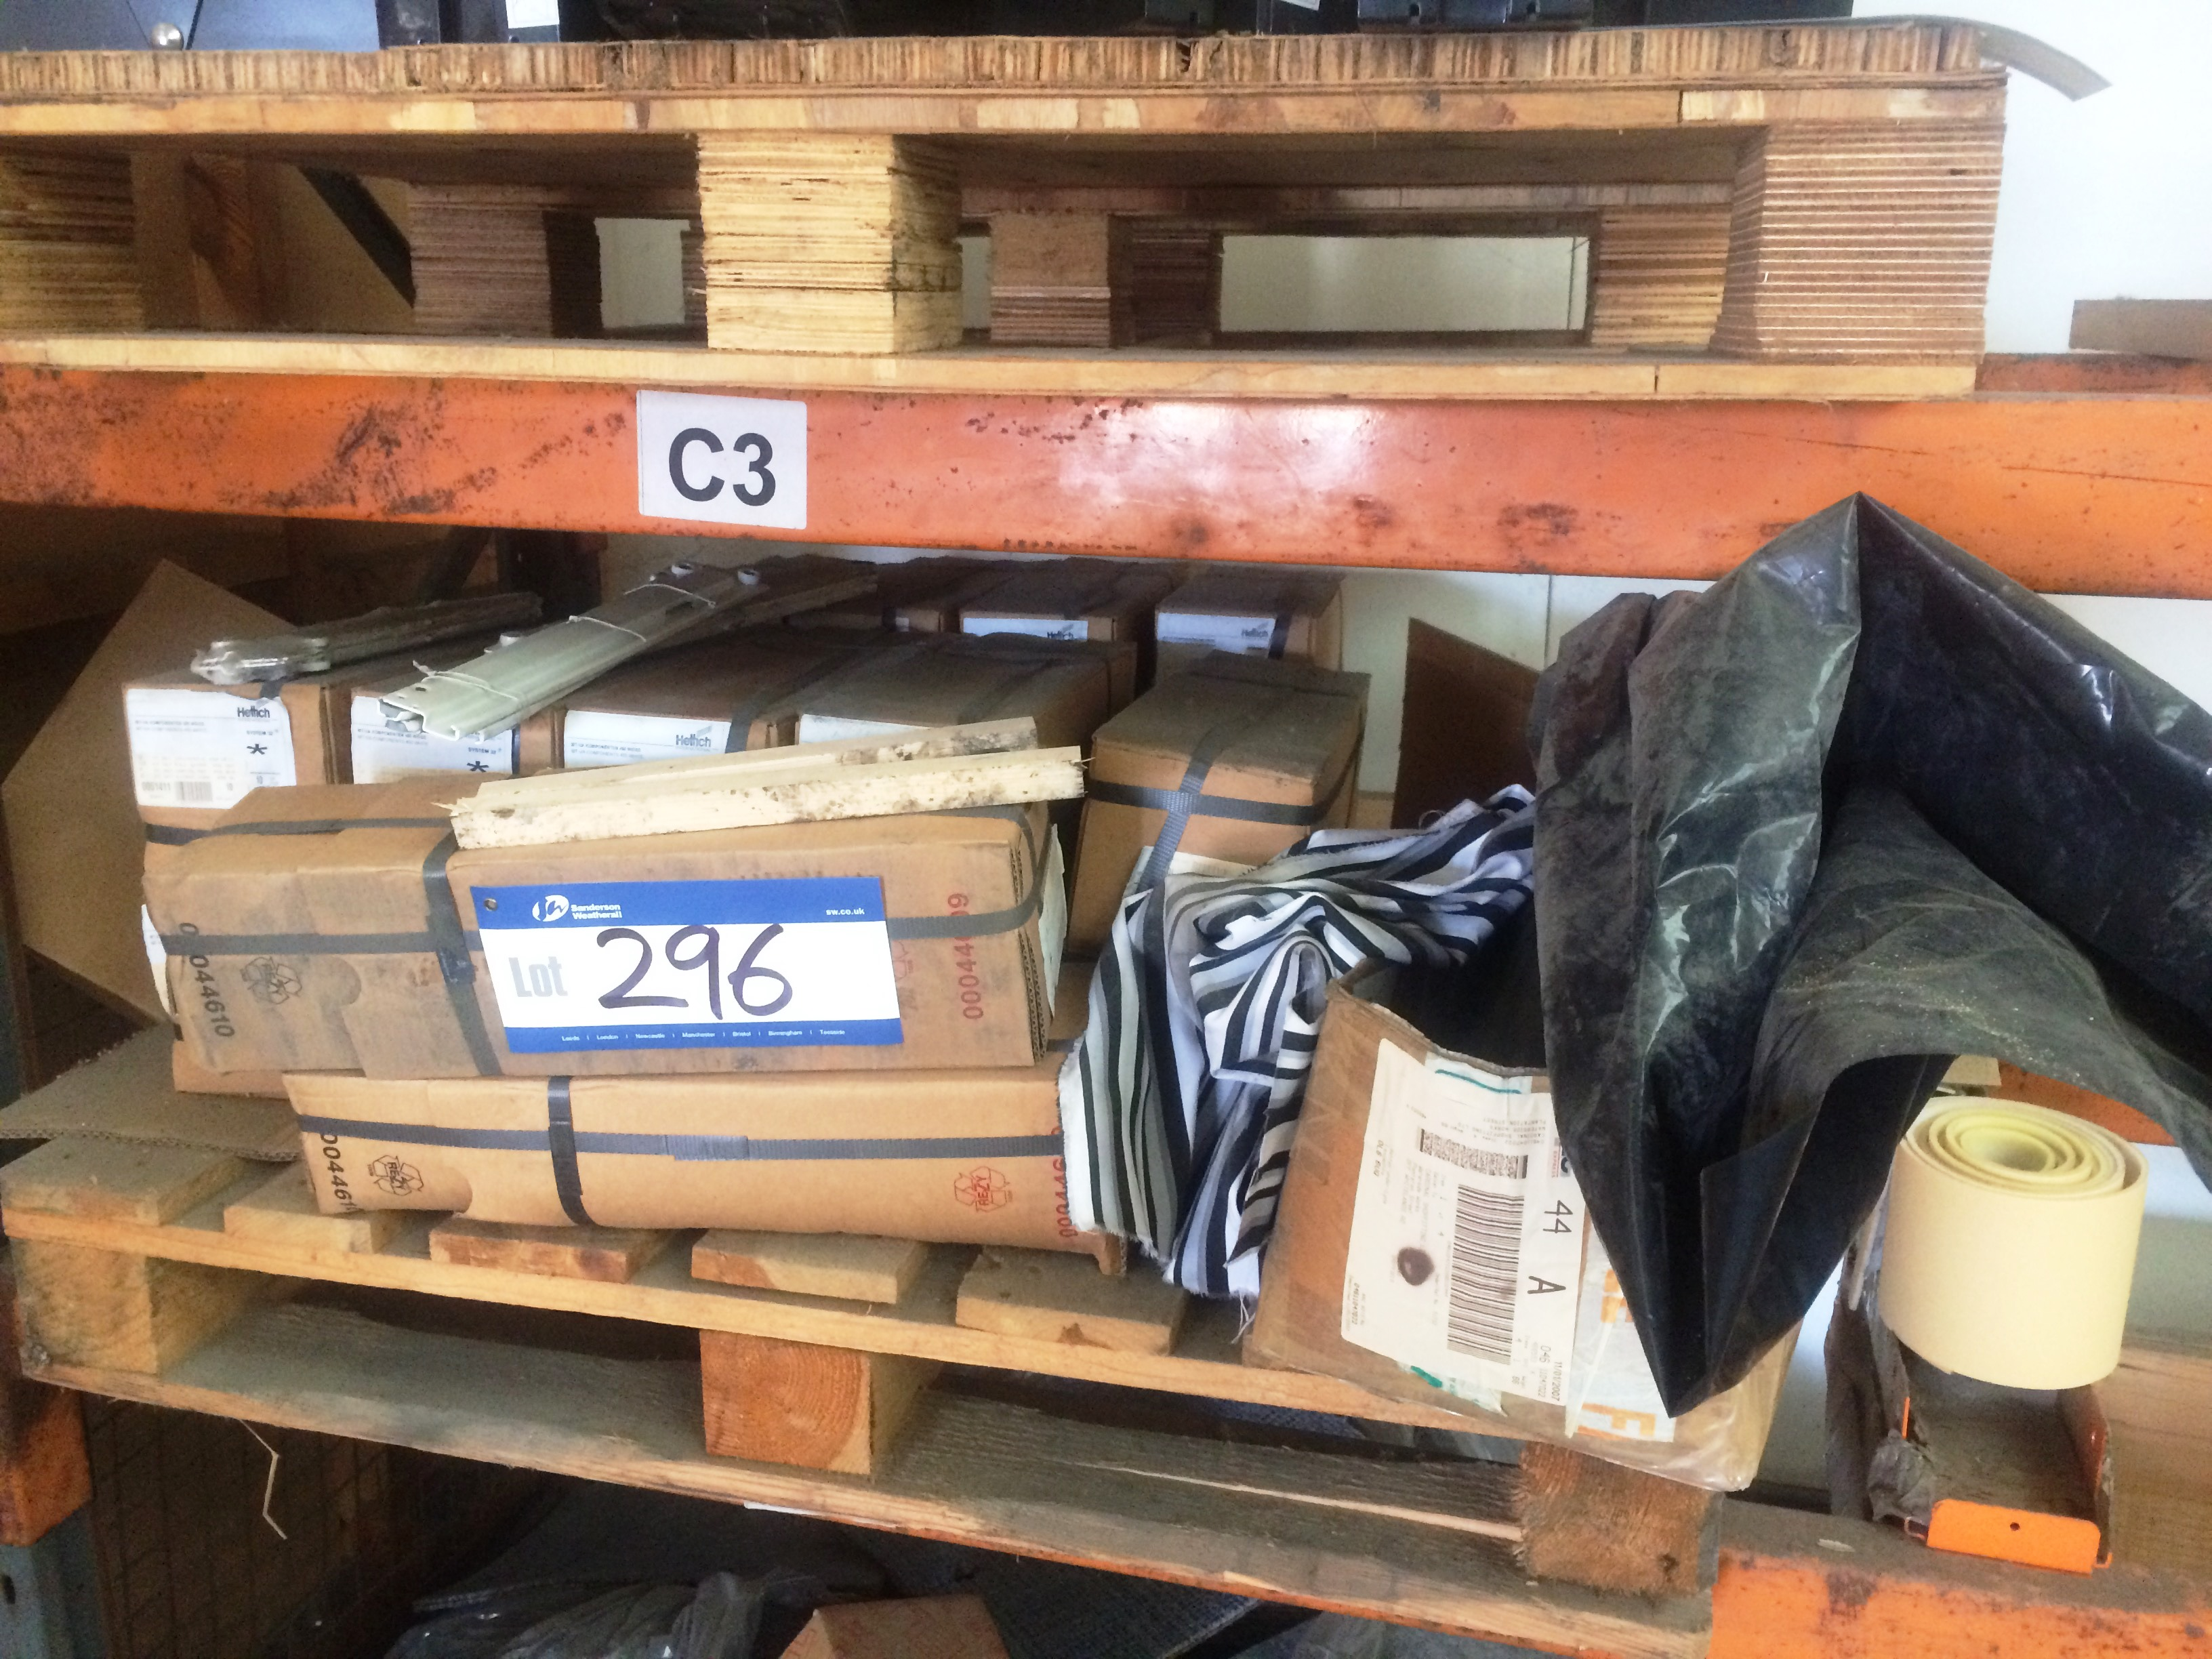 Lot 296 - Quantity of Hettich Drawer Runners (please note - this lot ...